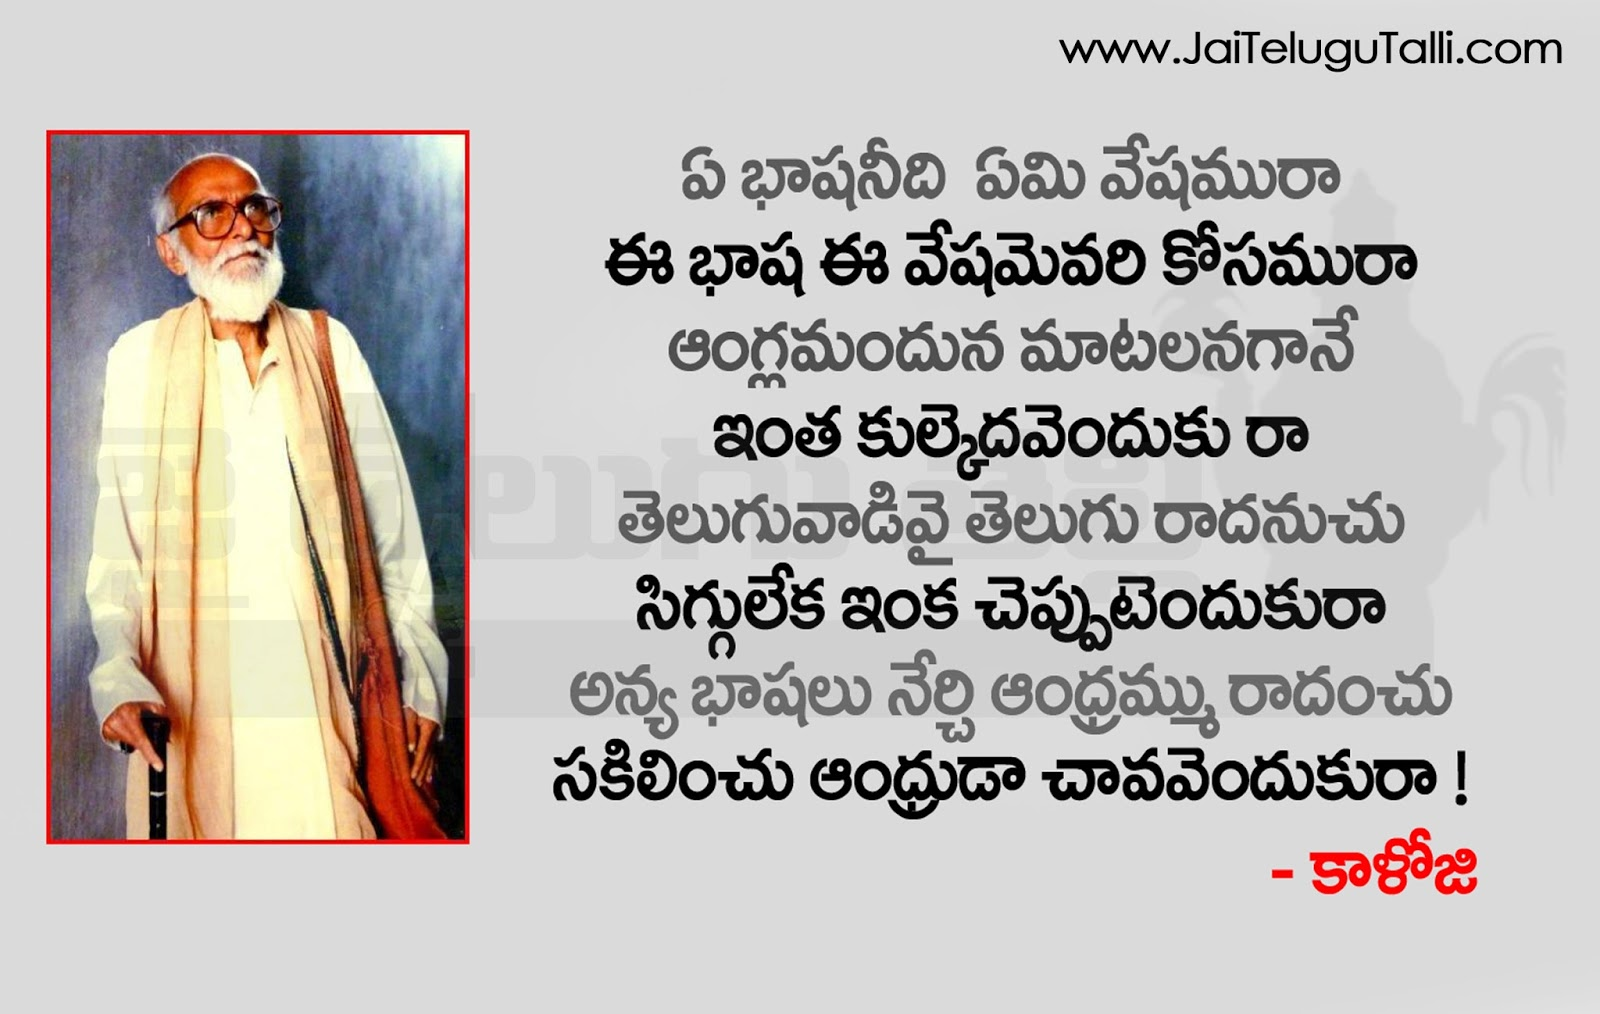 Inspirational Quotations Kaloji Narayana Rao Inspirational Quotations In Telugu 43  Www